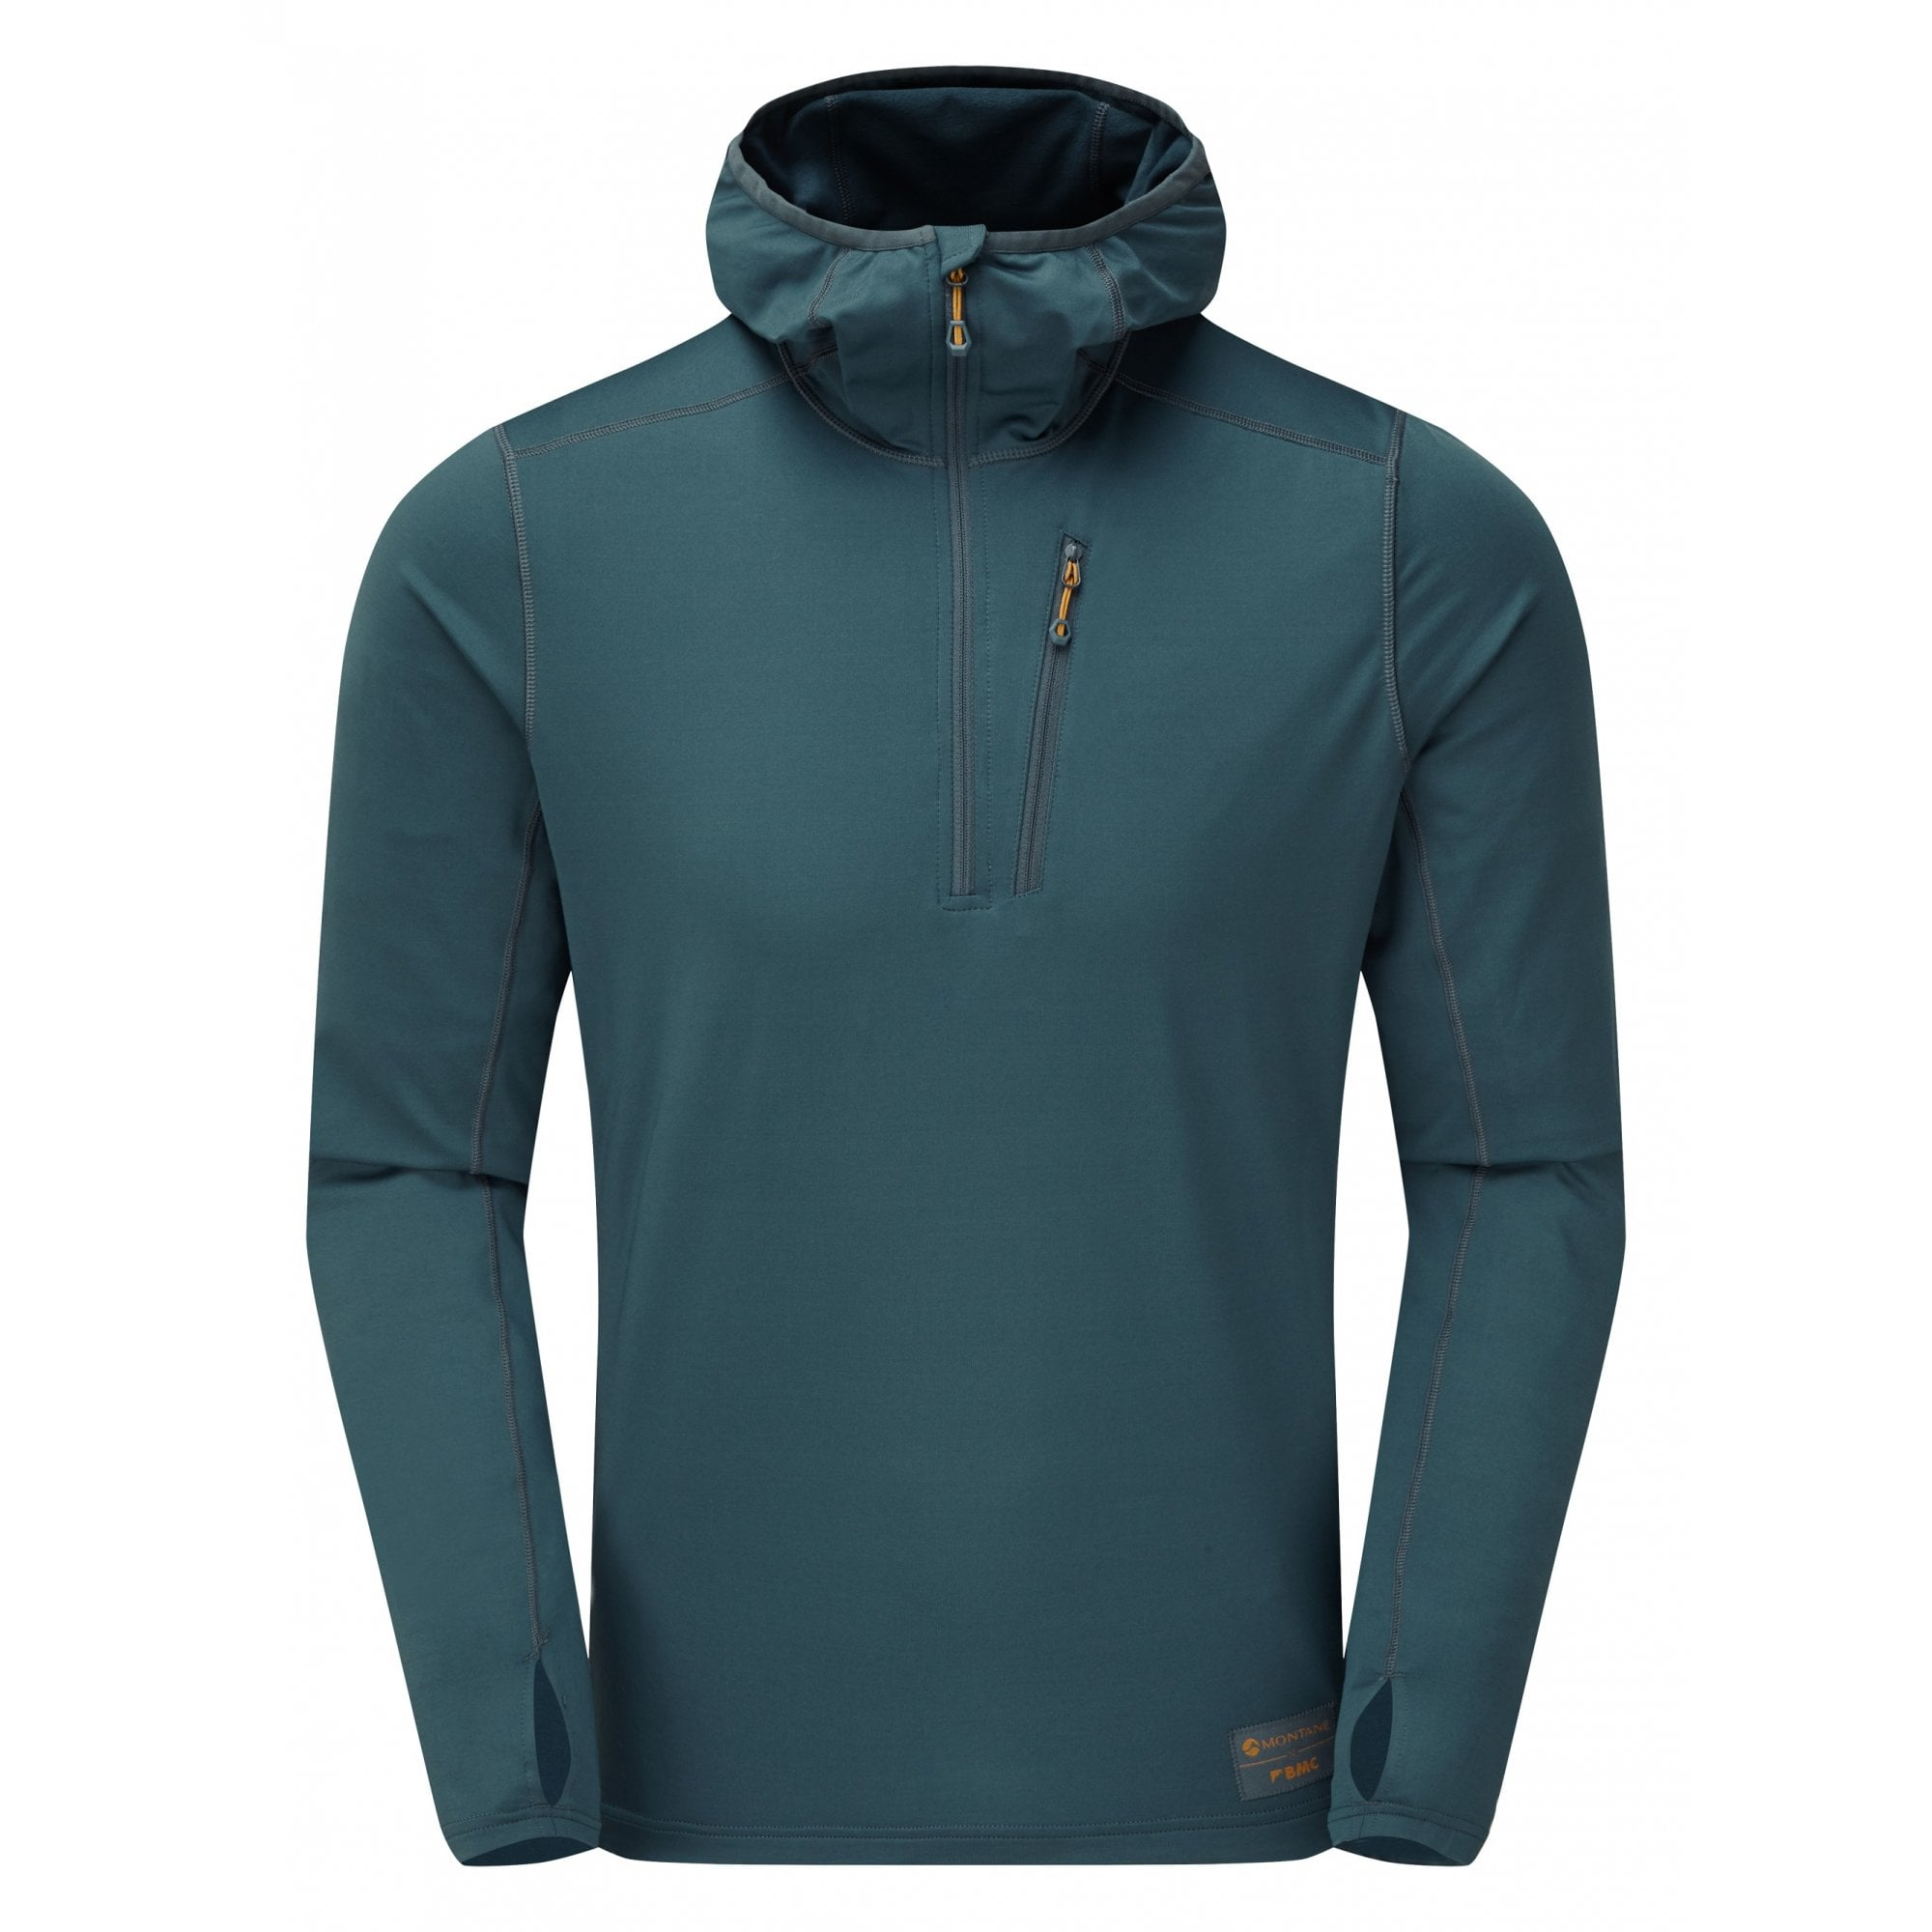 Lightweight stretchy climbing top SALES SAMPLE Montane Jam Hoodie Pull-On